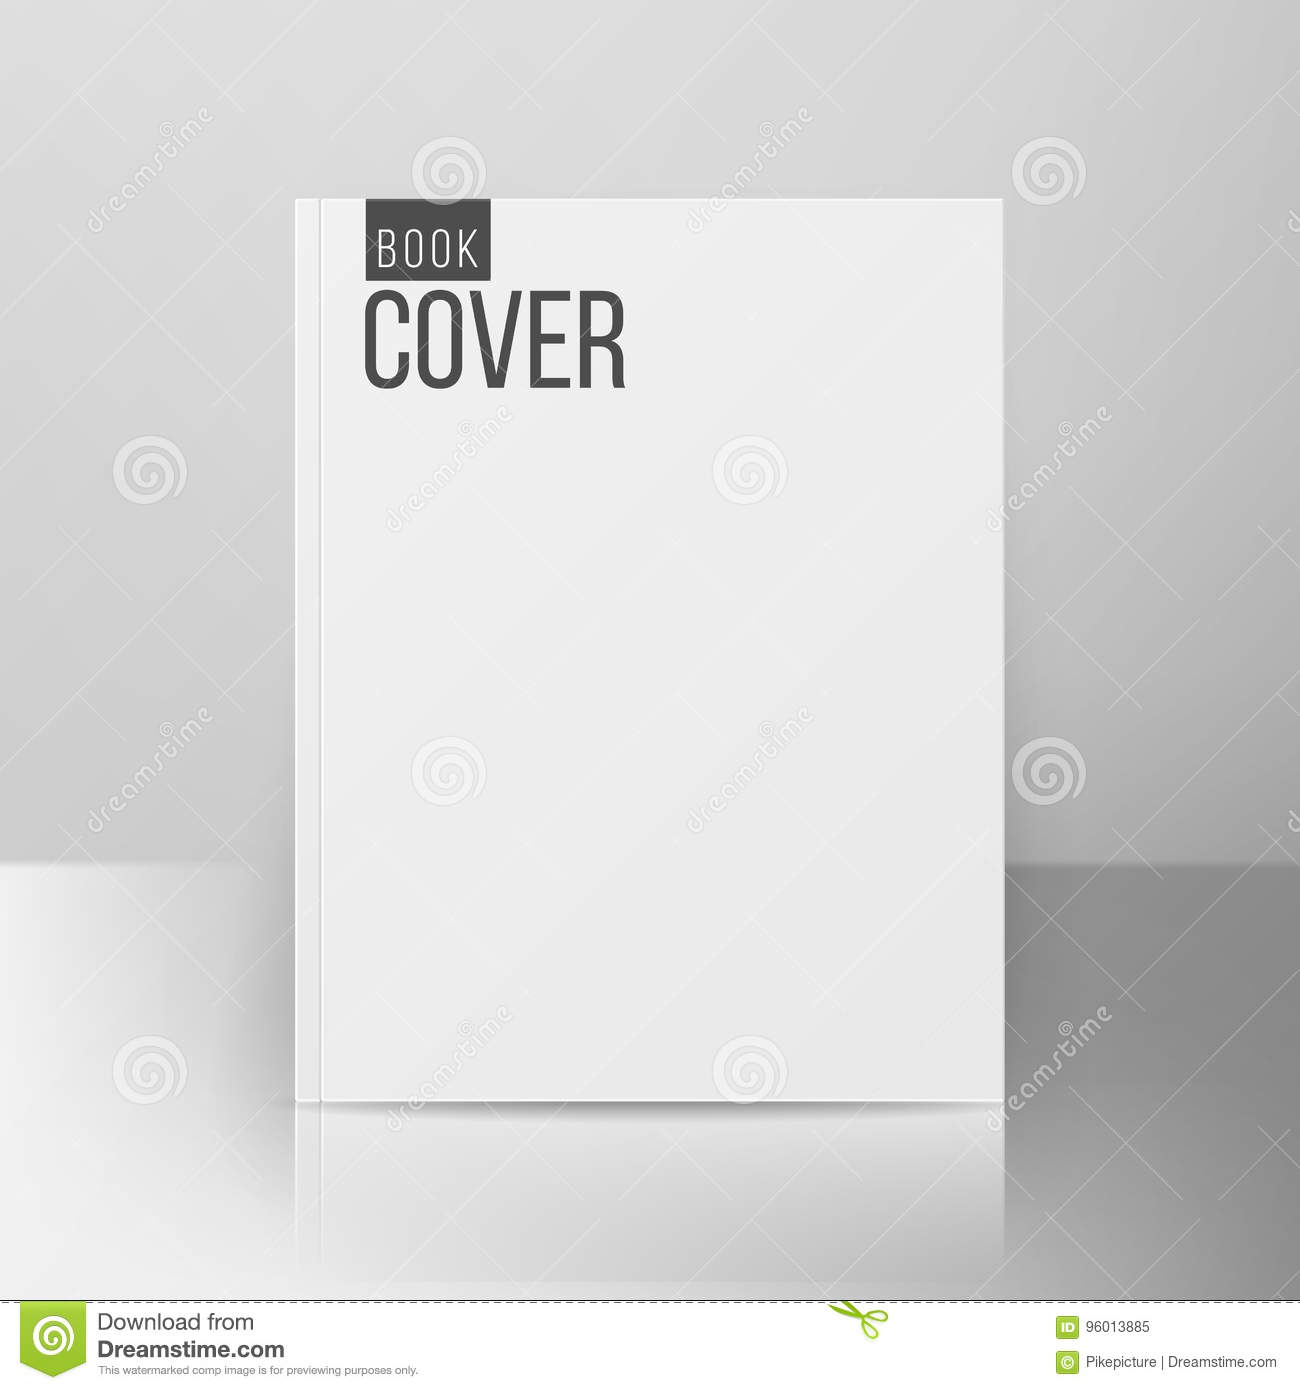 book cover template vector realistic illustration on gray